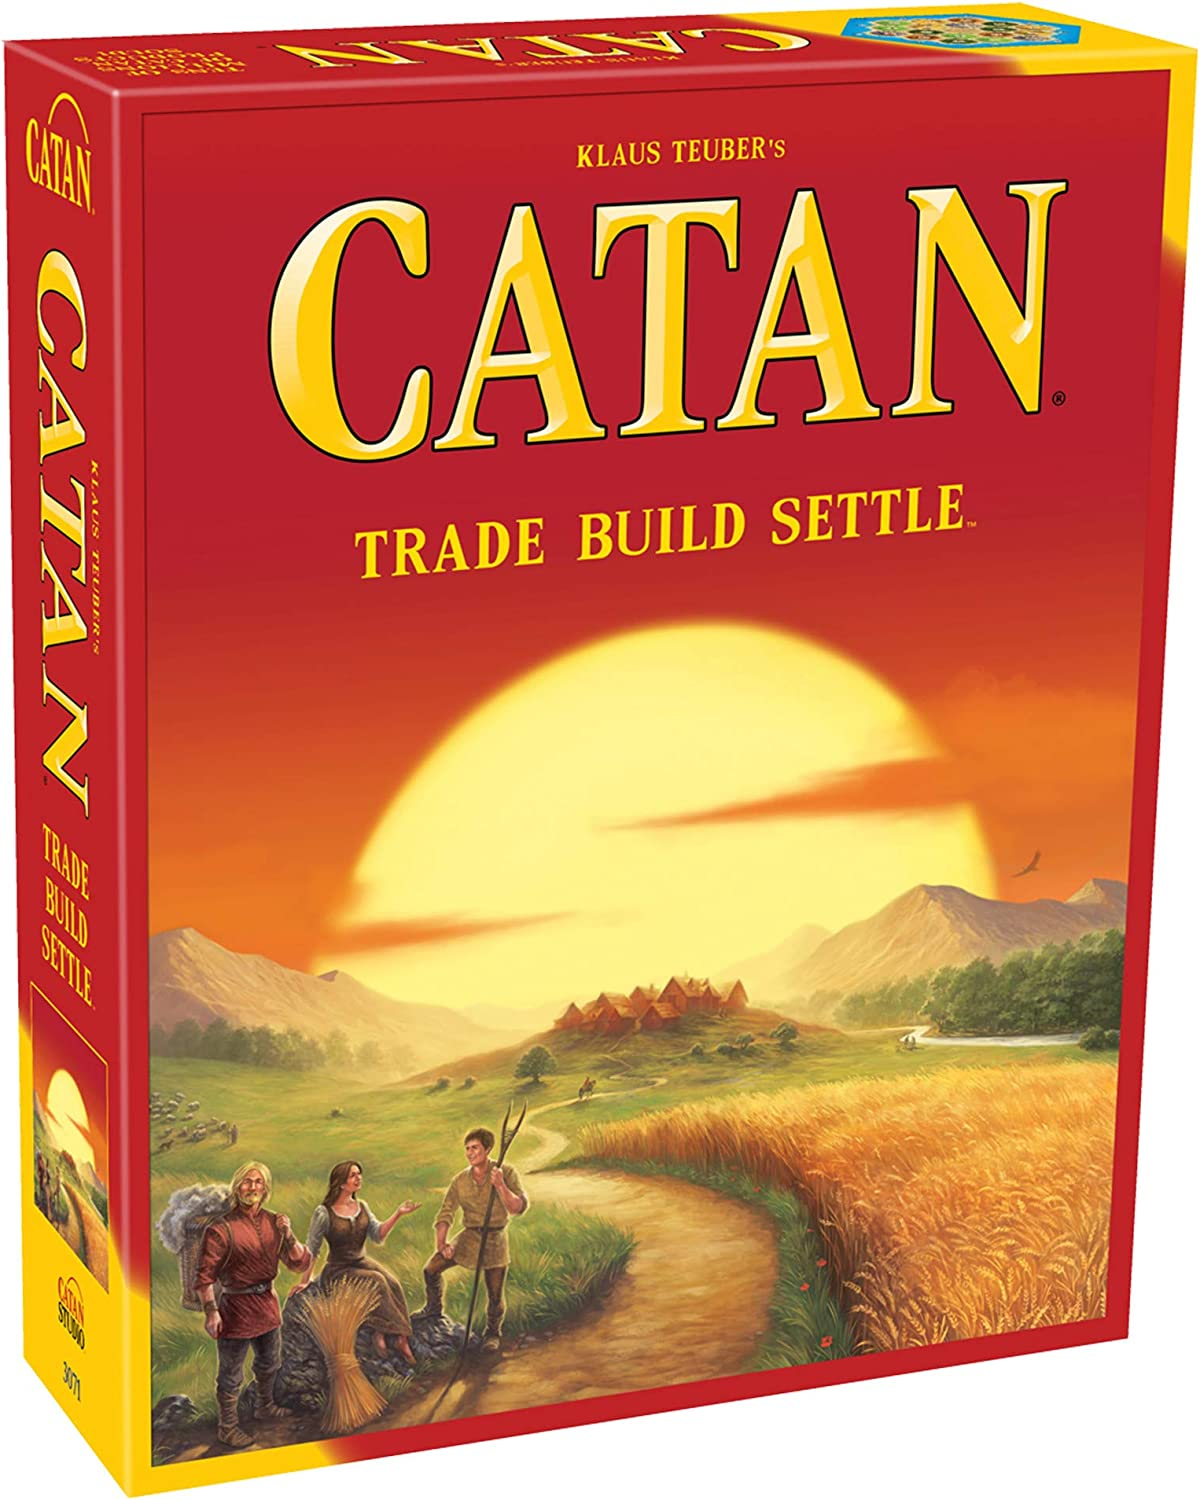 Catan: Trade, Build, Settle | 10 Unexpected Gifts For Brothers That They'll Actually Like